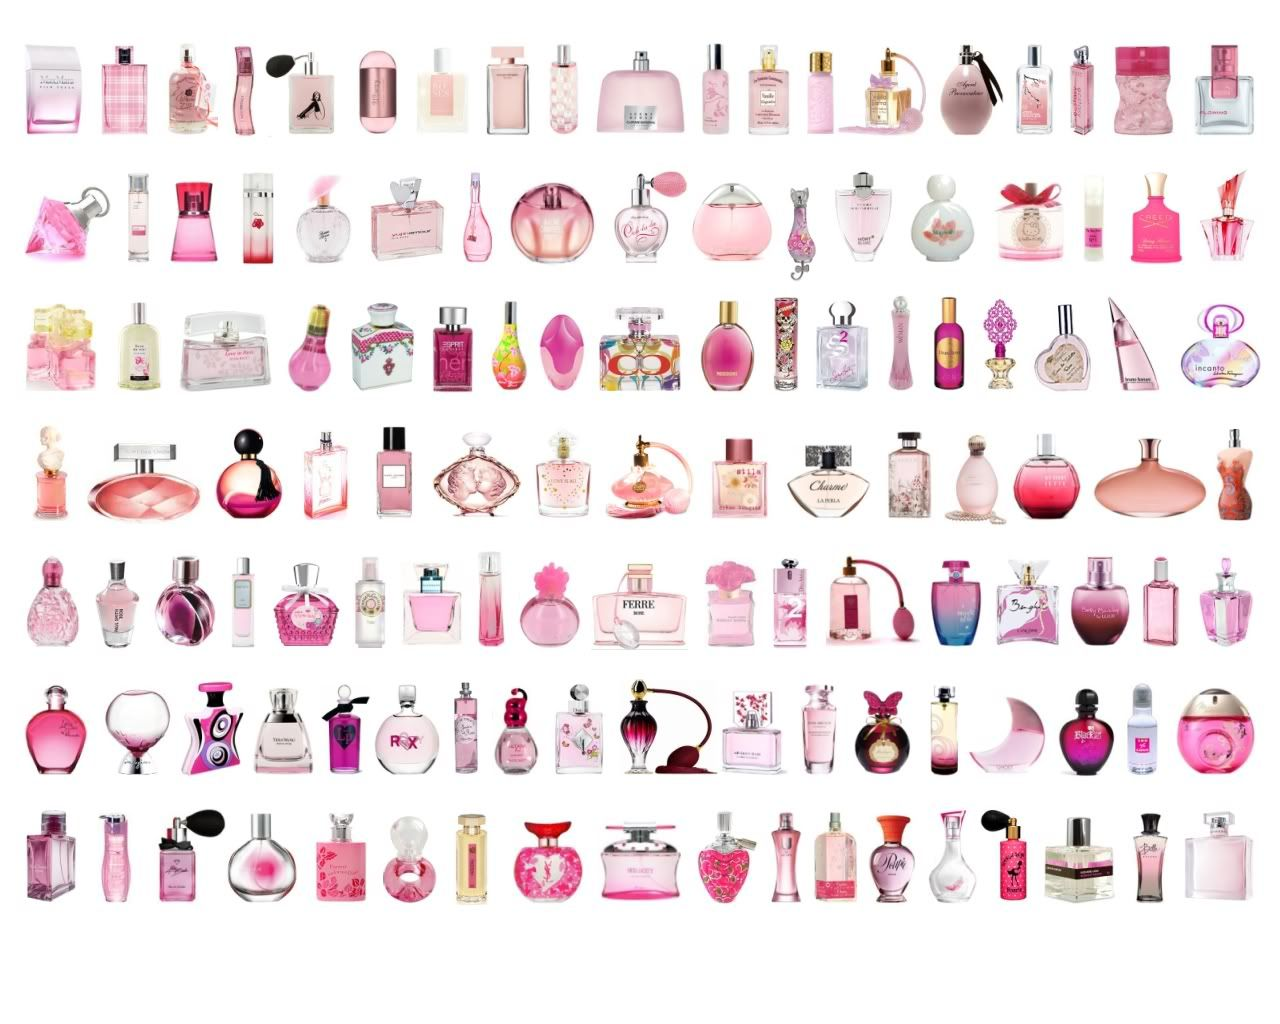 All Types Of Pink Perfume 3 ヴィクトリアシークレット Pink ピンクの香水 ヴィクトリアズシークレット